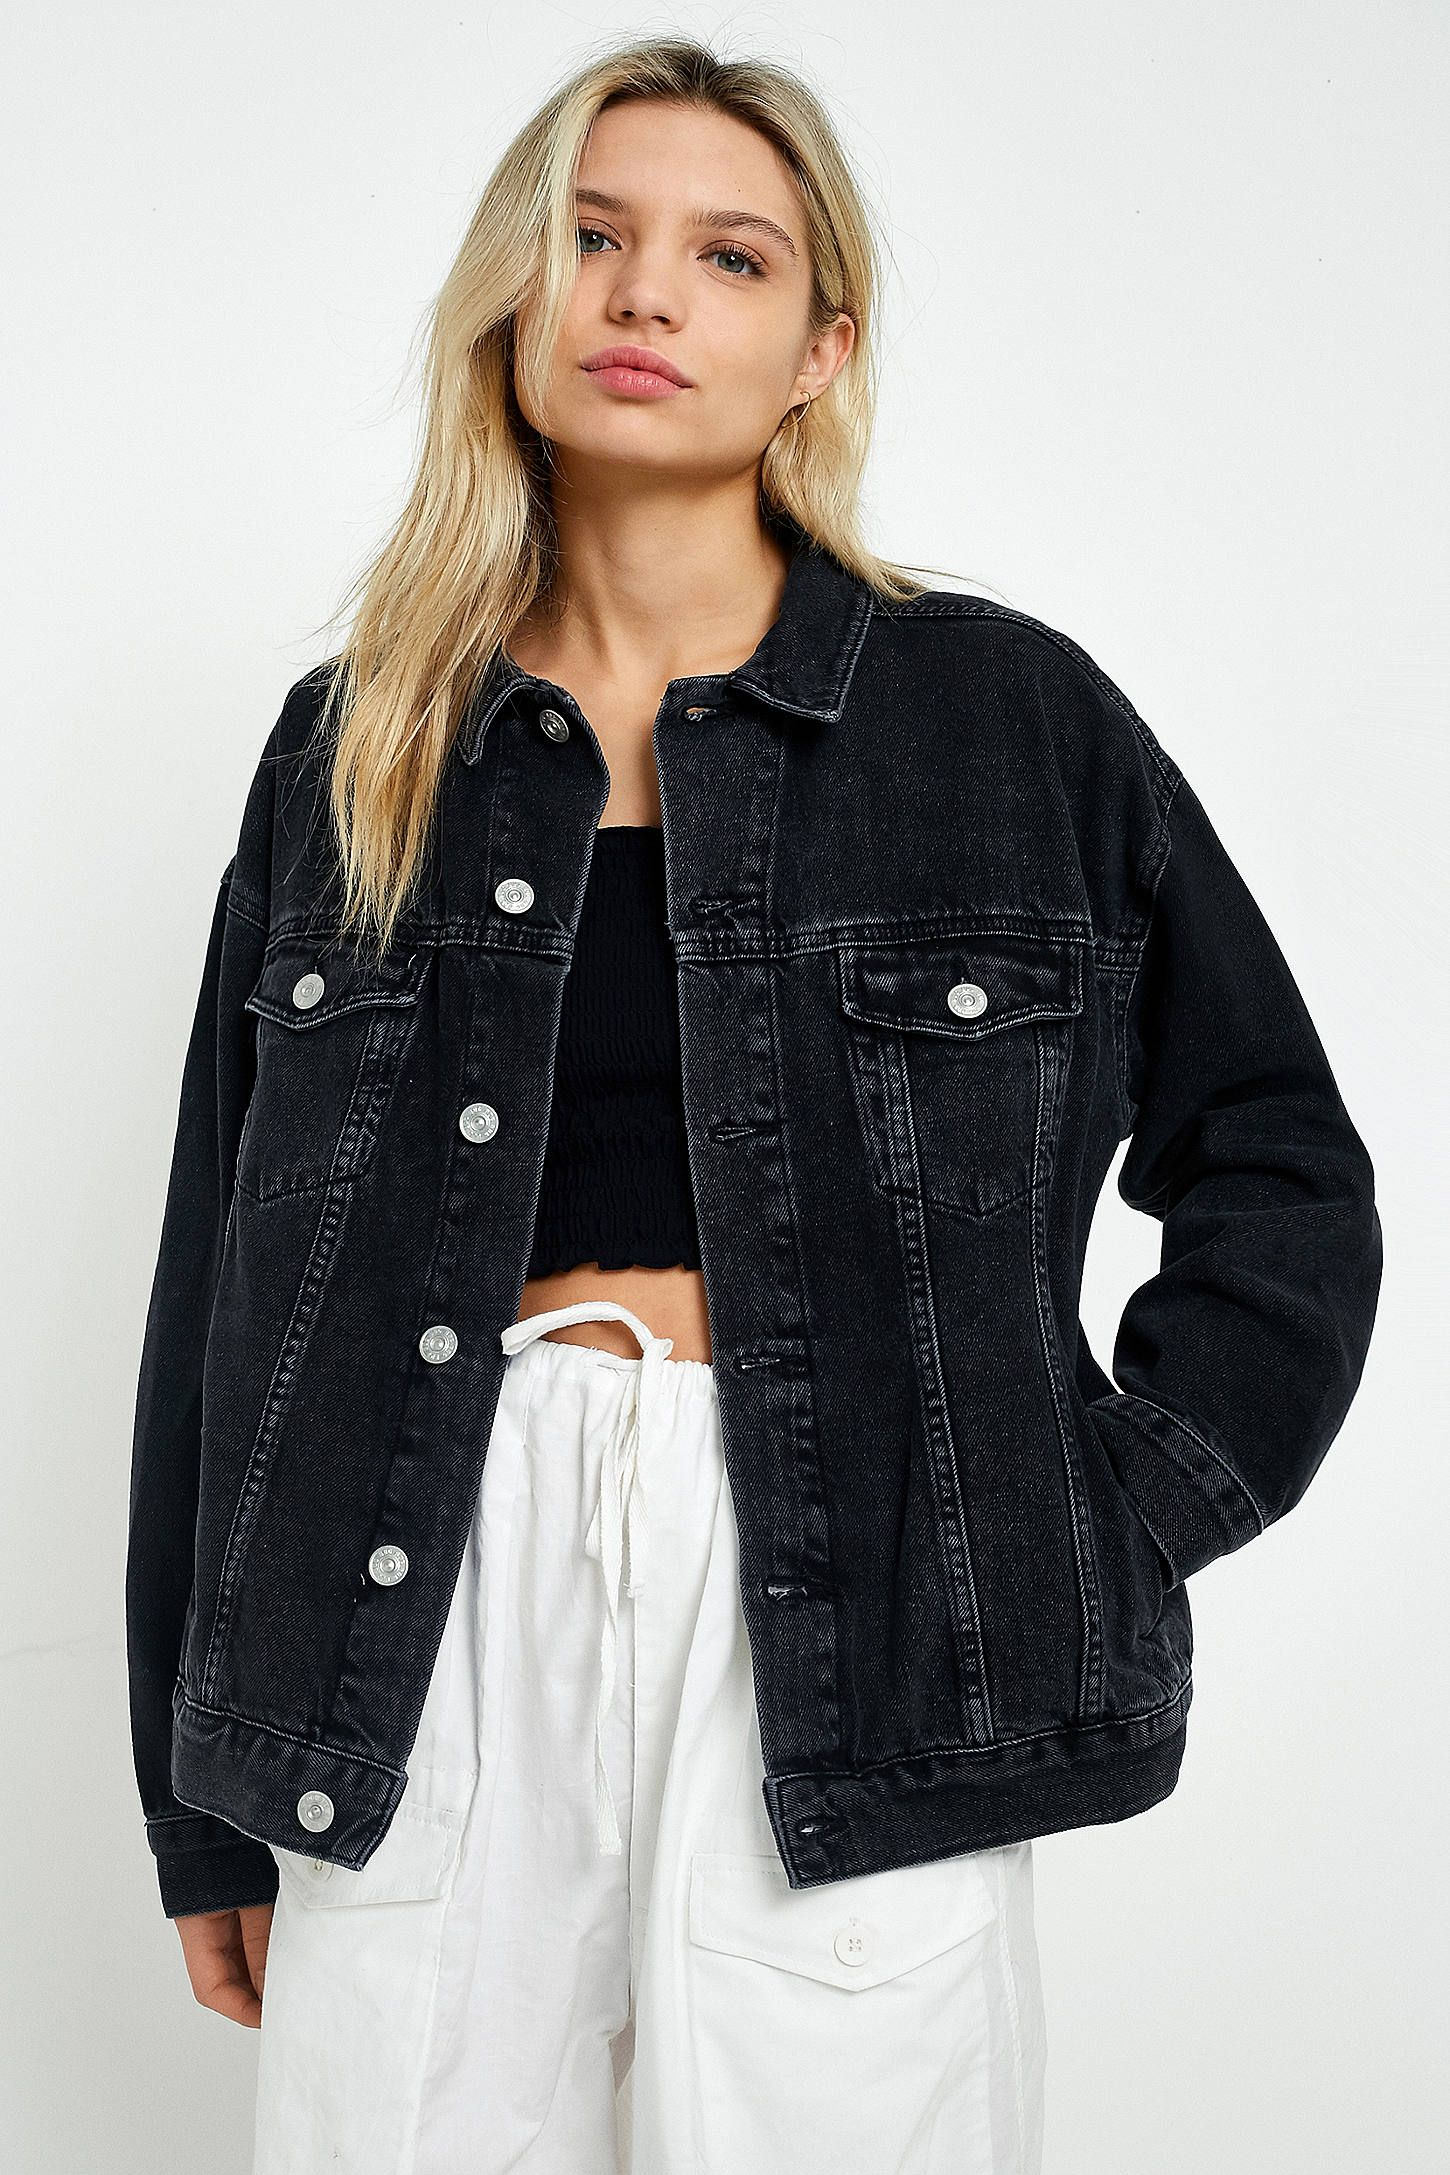 a667c3a56 BDG Mom Washed Black Jeans in 2019   Boat party   Black denim ...